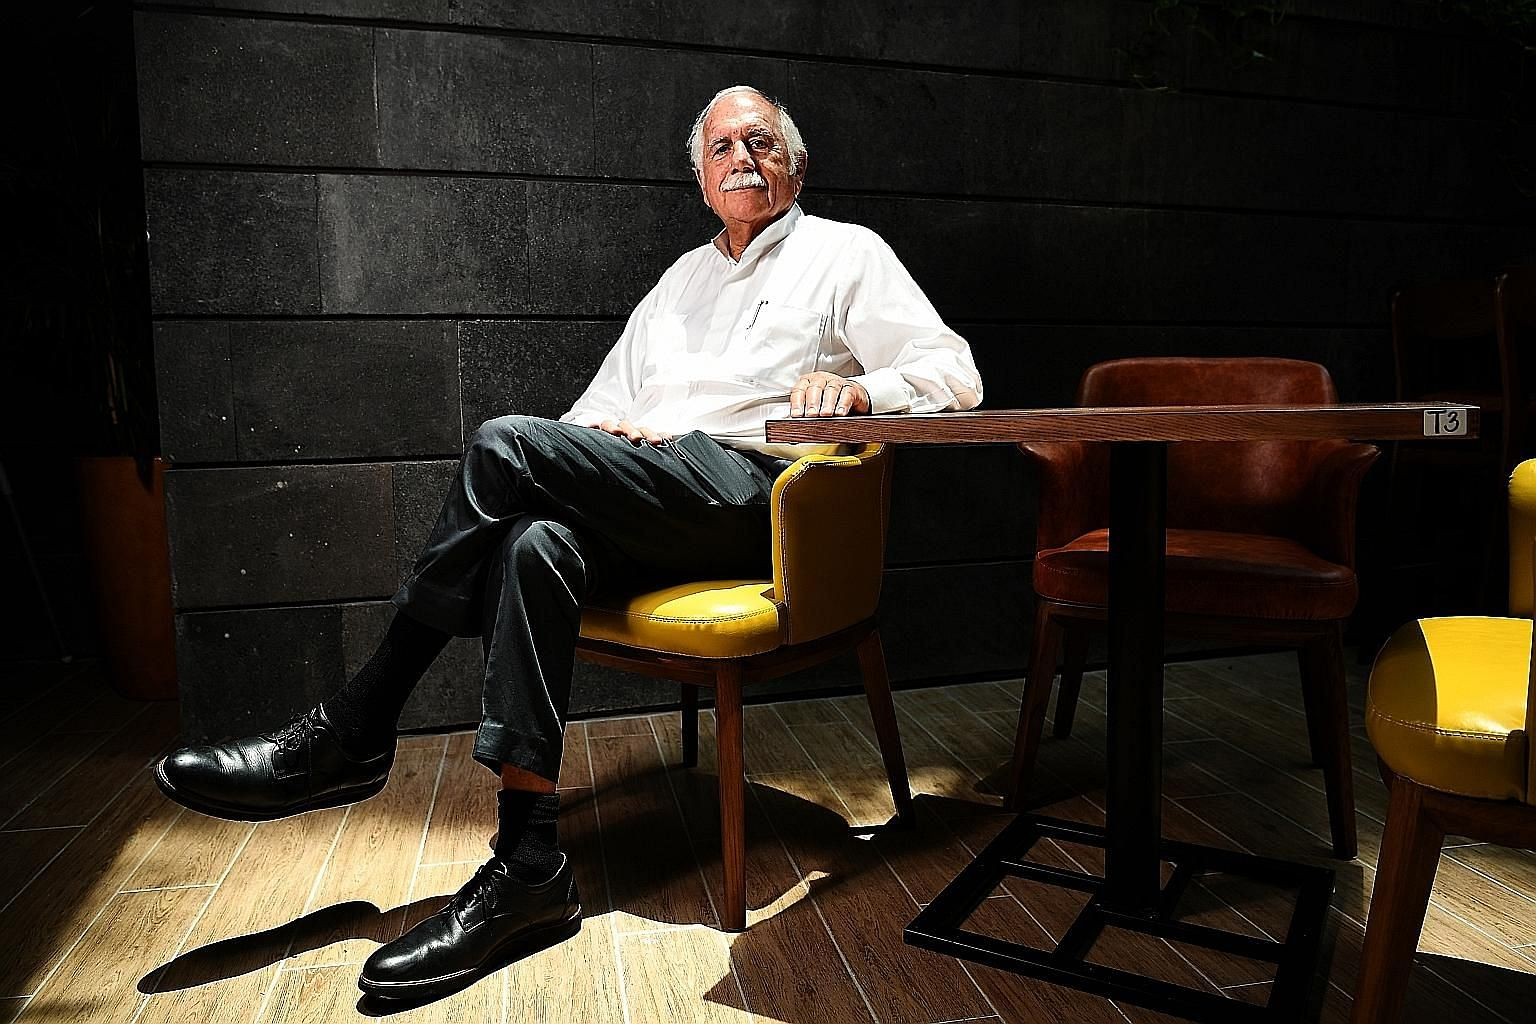 At 80, Israeli-born architect Moshe Safdie keeps a full schedule with projects around the world. Jewel Changi Airport is his latest work, and with the new mega-mall, the airport can now boast not just comfort and service but also architecture, he say